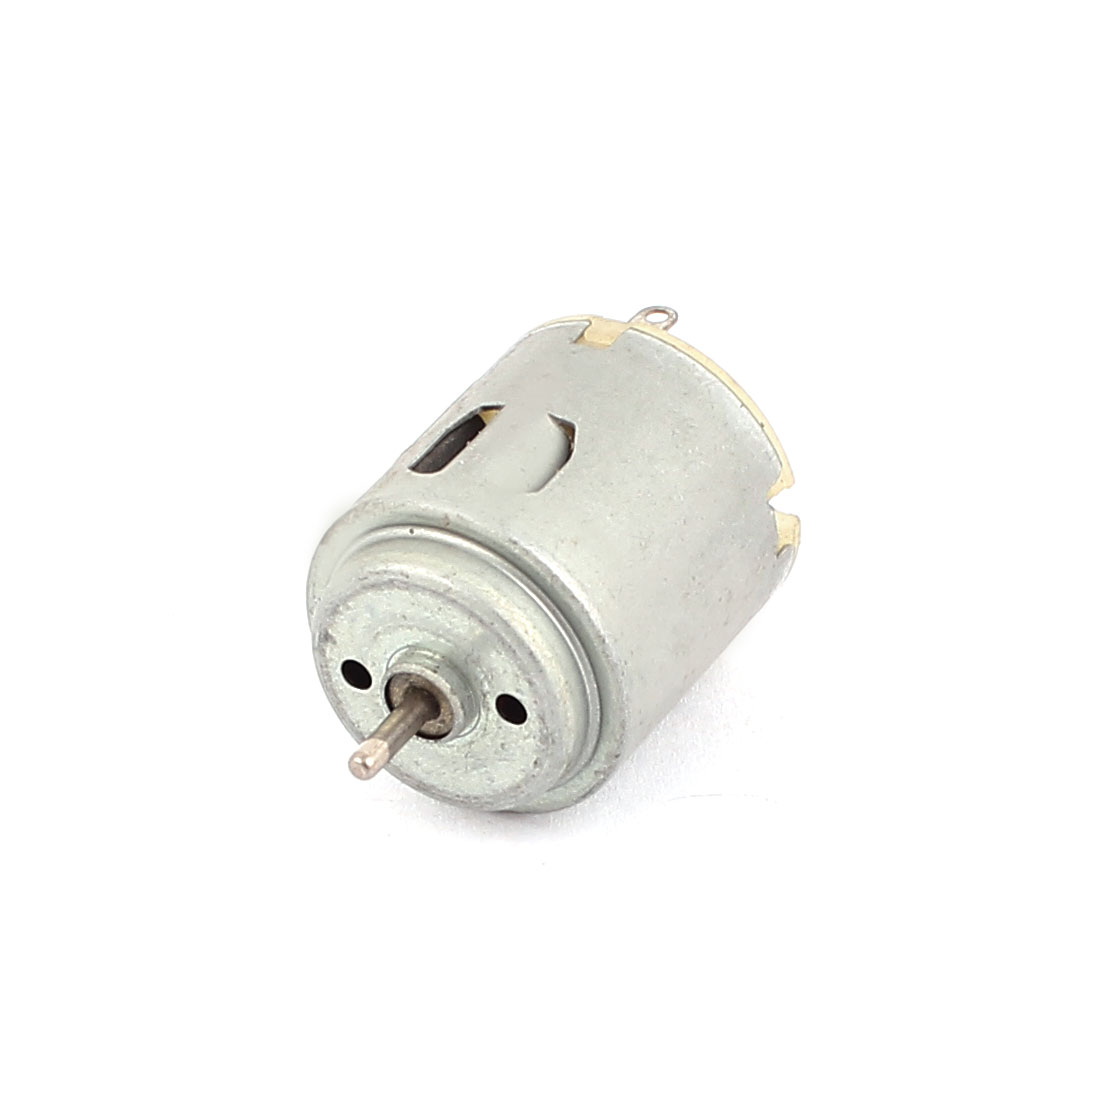 DC 3-6V 6500RPM Output Speed Mini Micro Motor R260 for DIY Model Toy